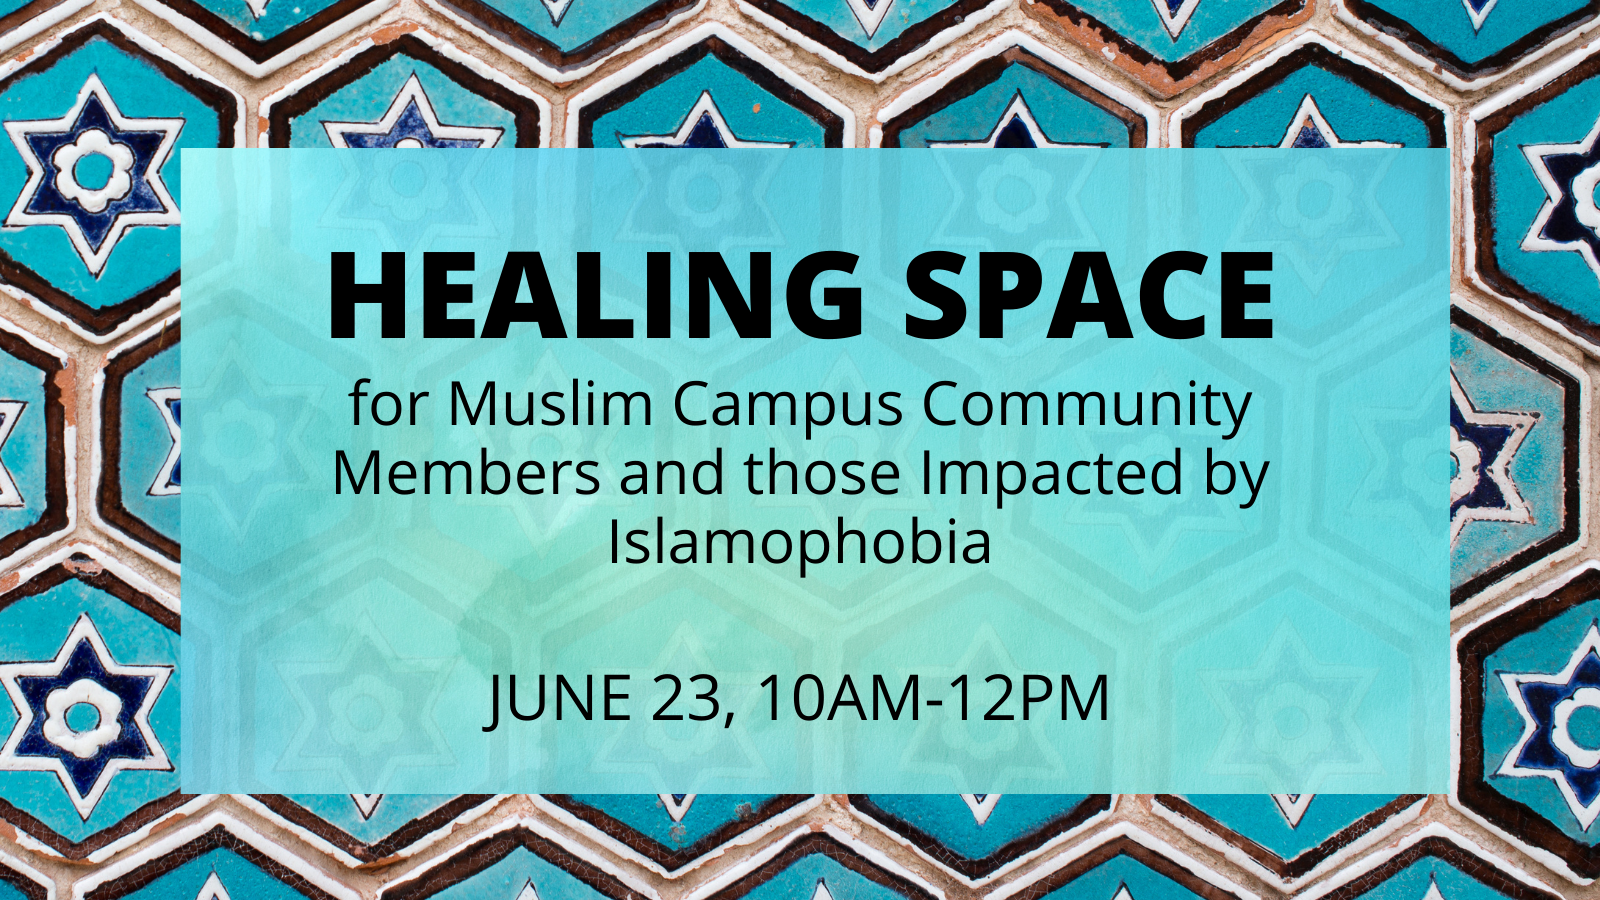 Healing Space for Muslim Campus Community Members and those Impacted by Islamophobia